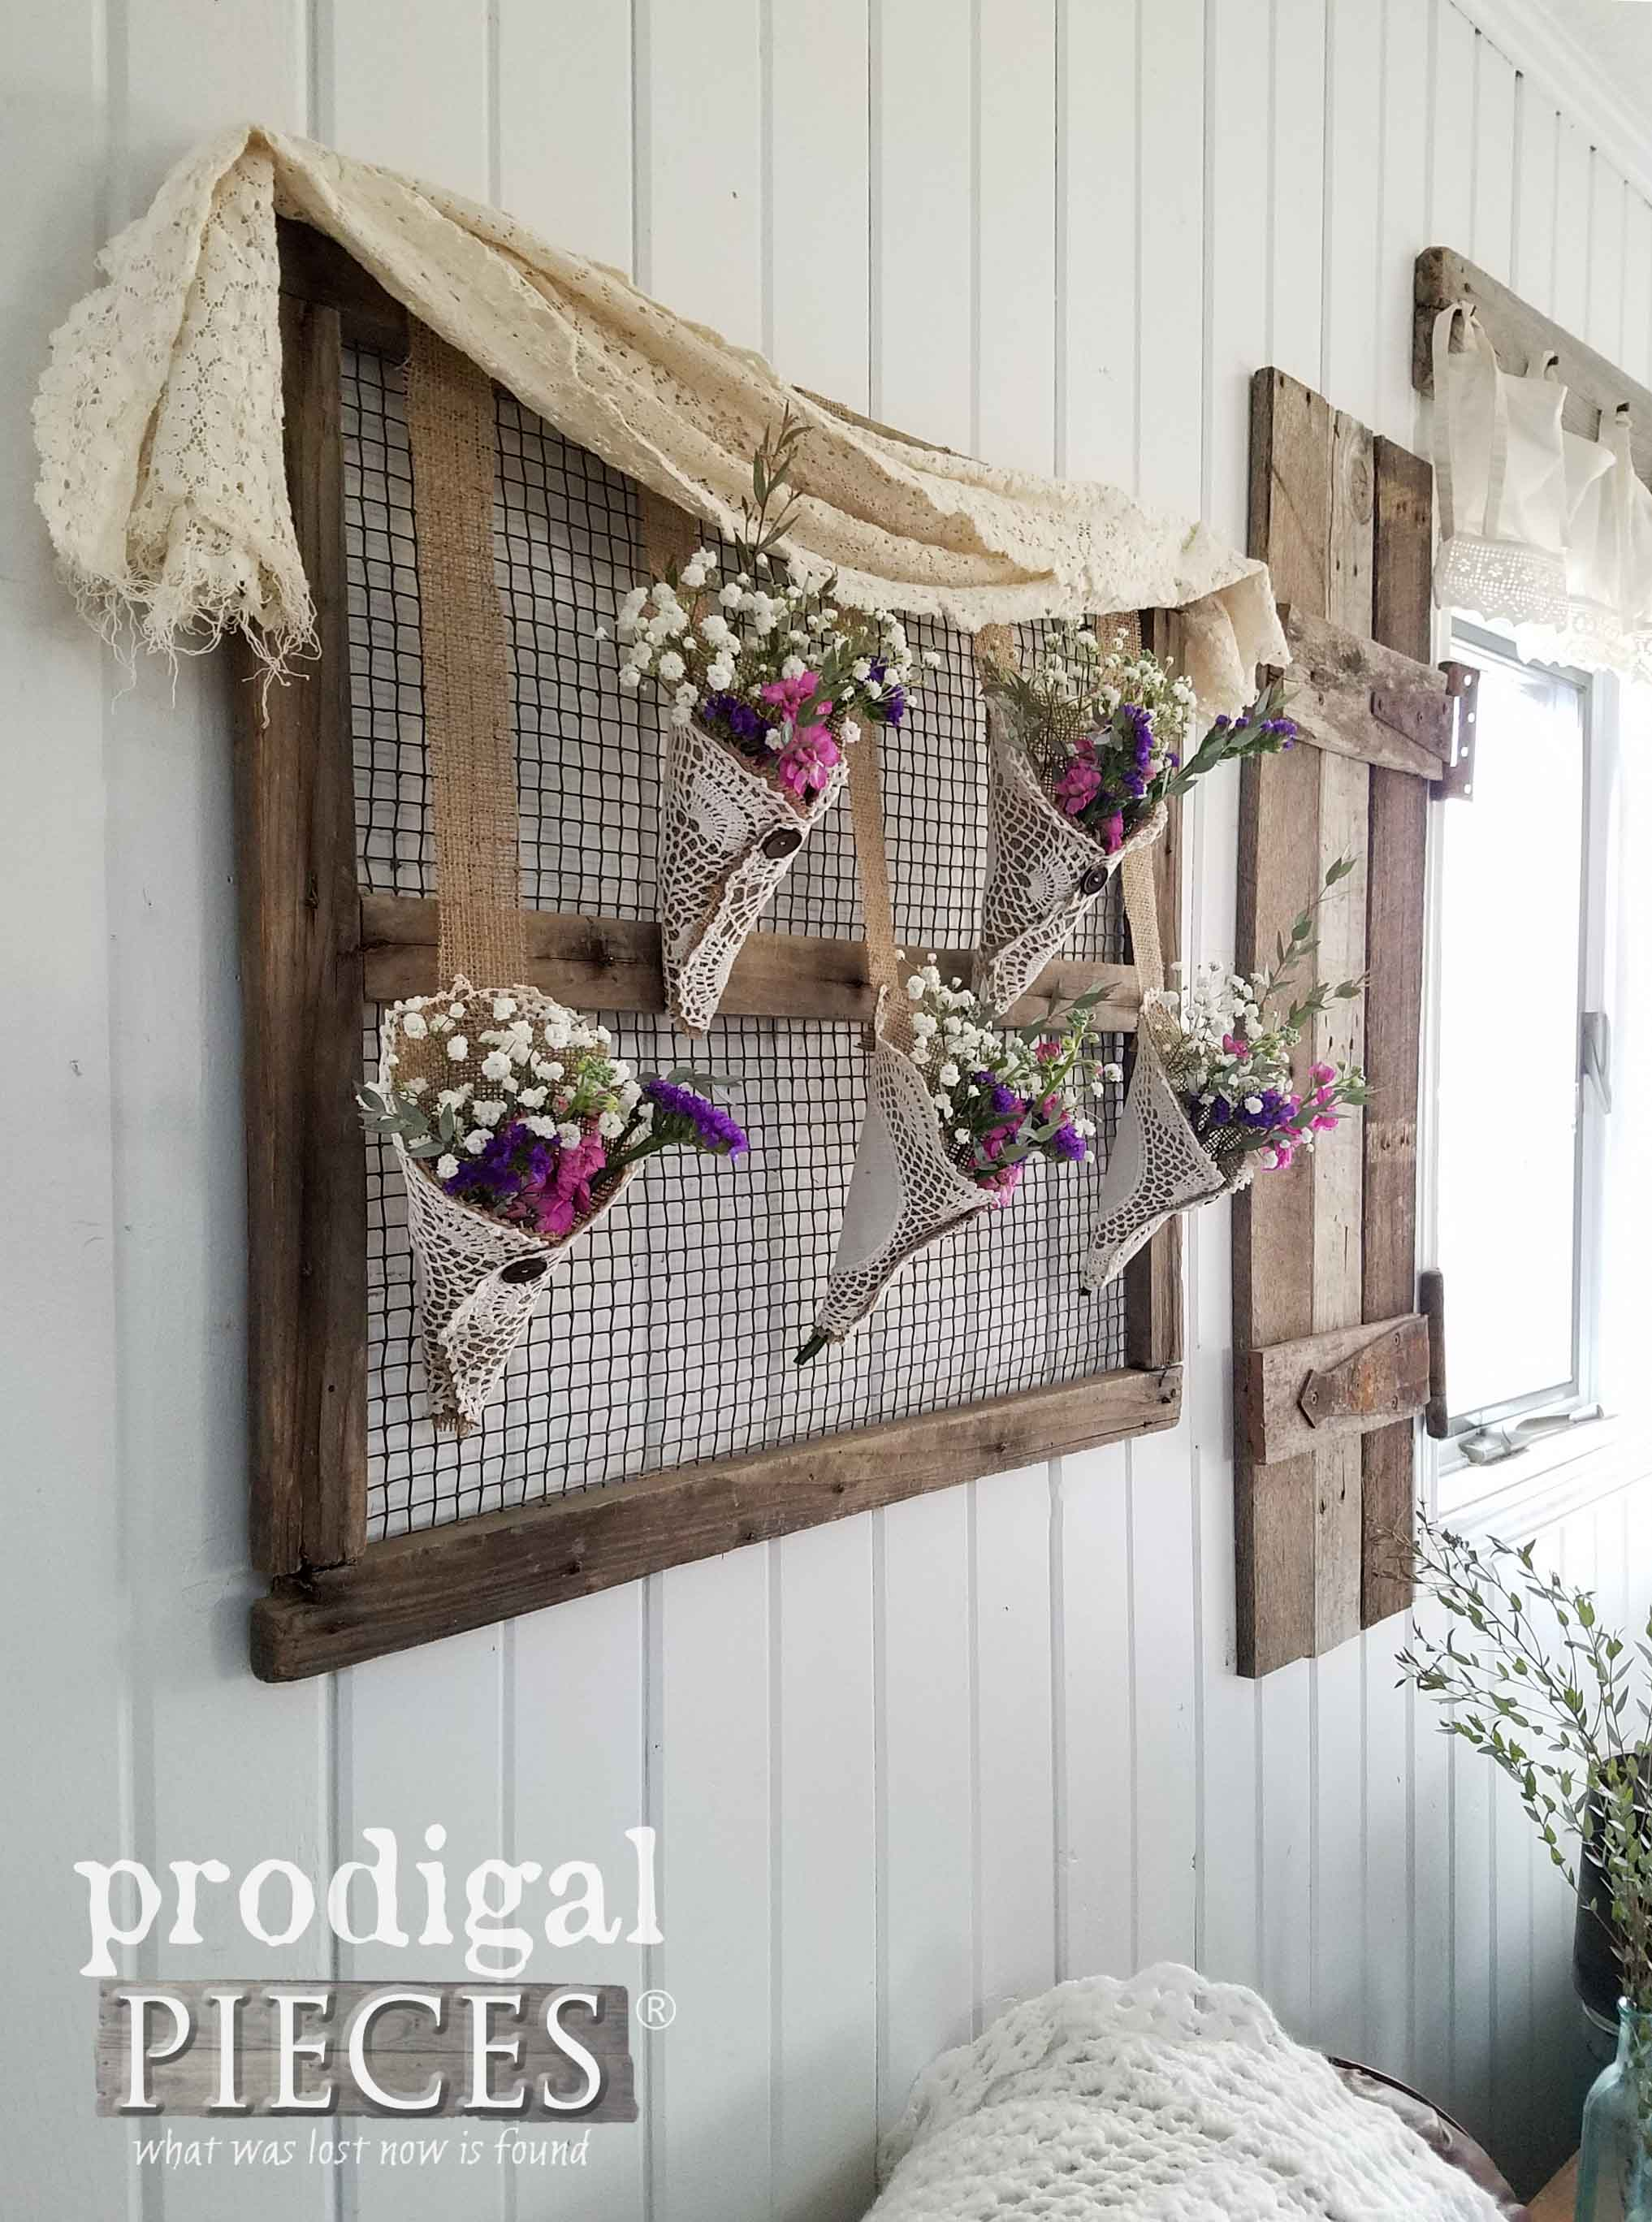 Reclaimed and Repurposed Burlap and Doily Wall Art from Flea Market Finds by Larissa of Prodigal Pieces | prodigalpieces.com